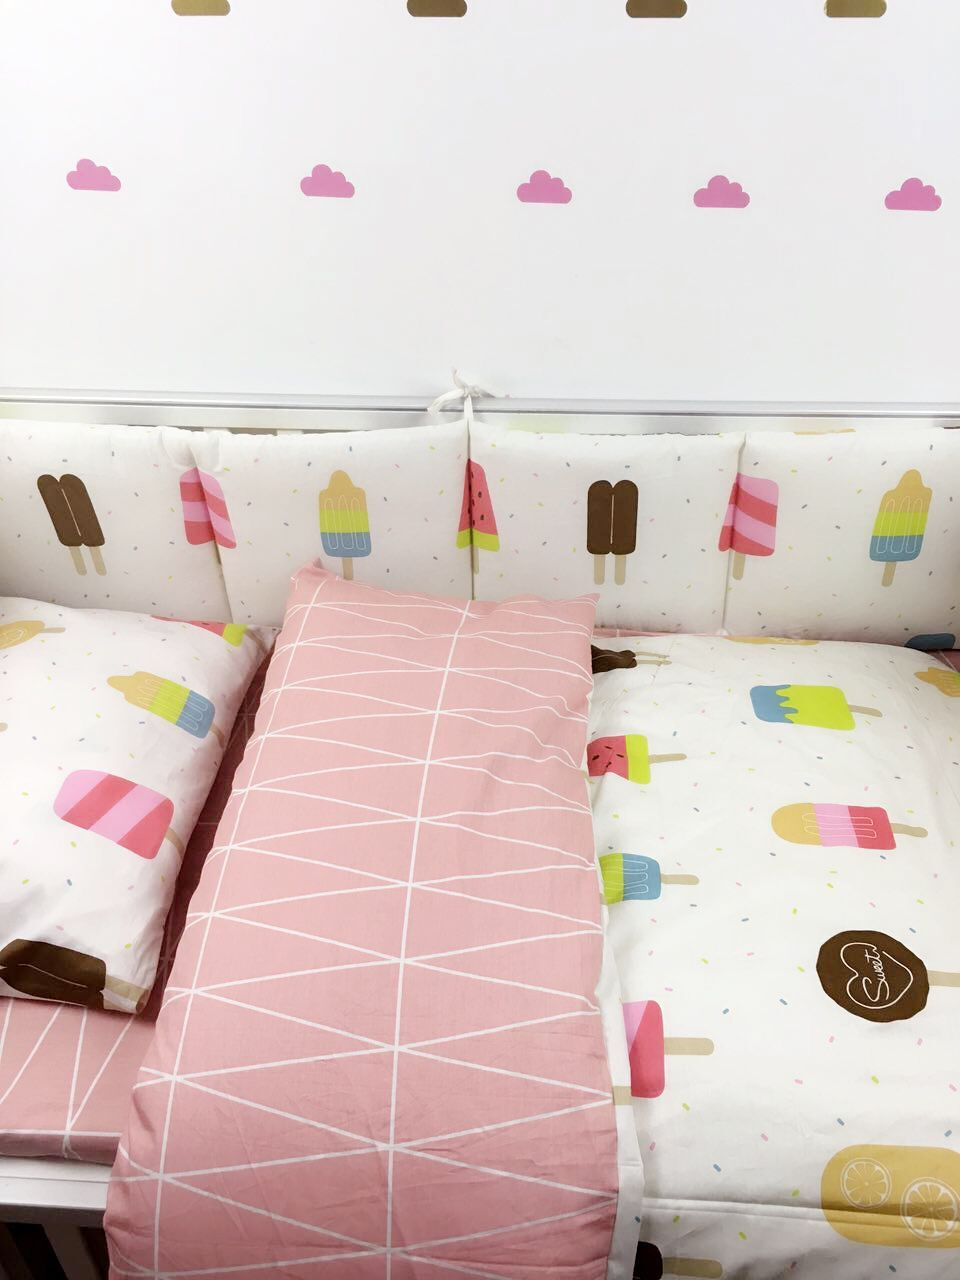 7pc Crib Infant Room Kids Baby Bedroom Set Nursery Bedding